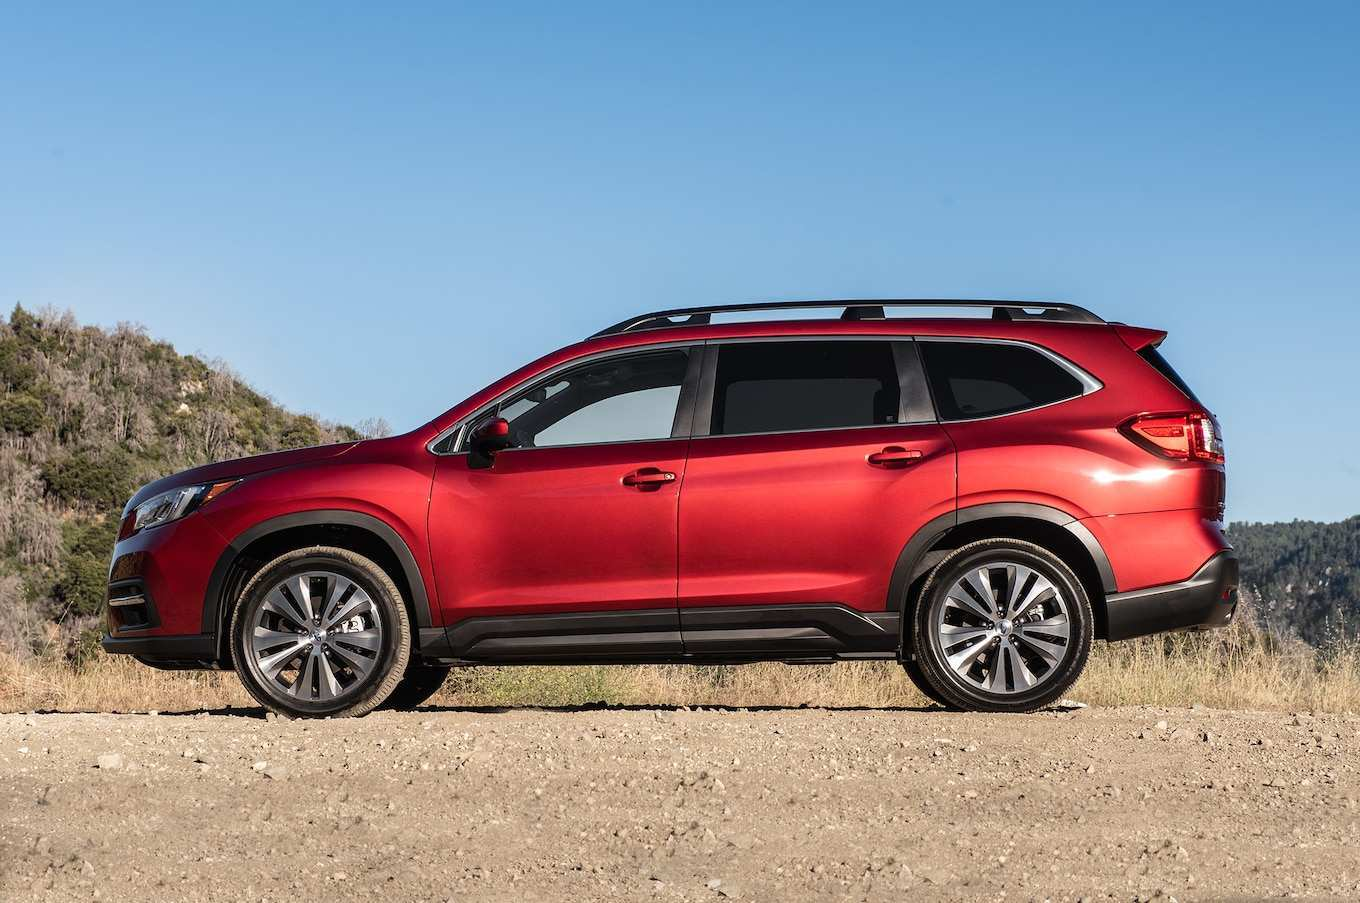 95 Gallery of 2019 Subaru Ascent Gvwr Price and Review with 2019 Subaru Ascent Gvwr